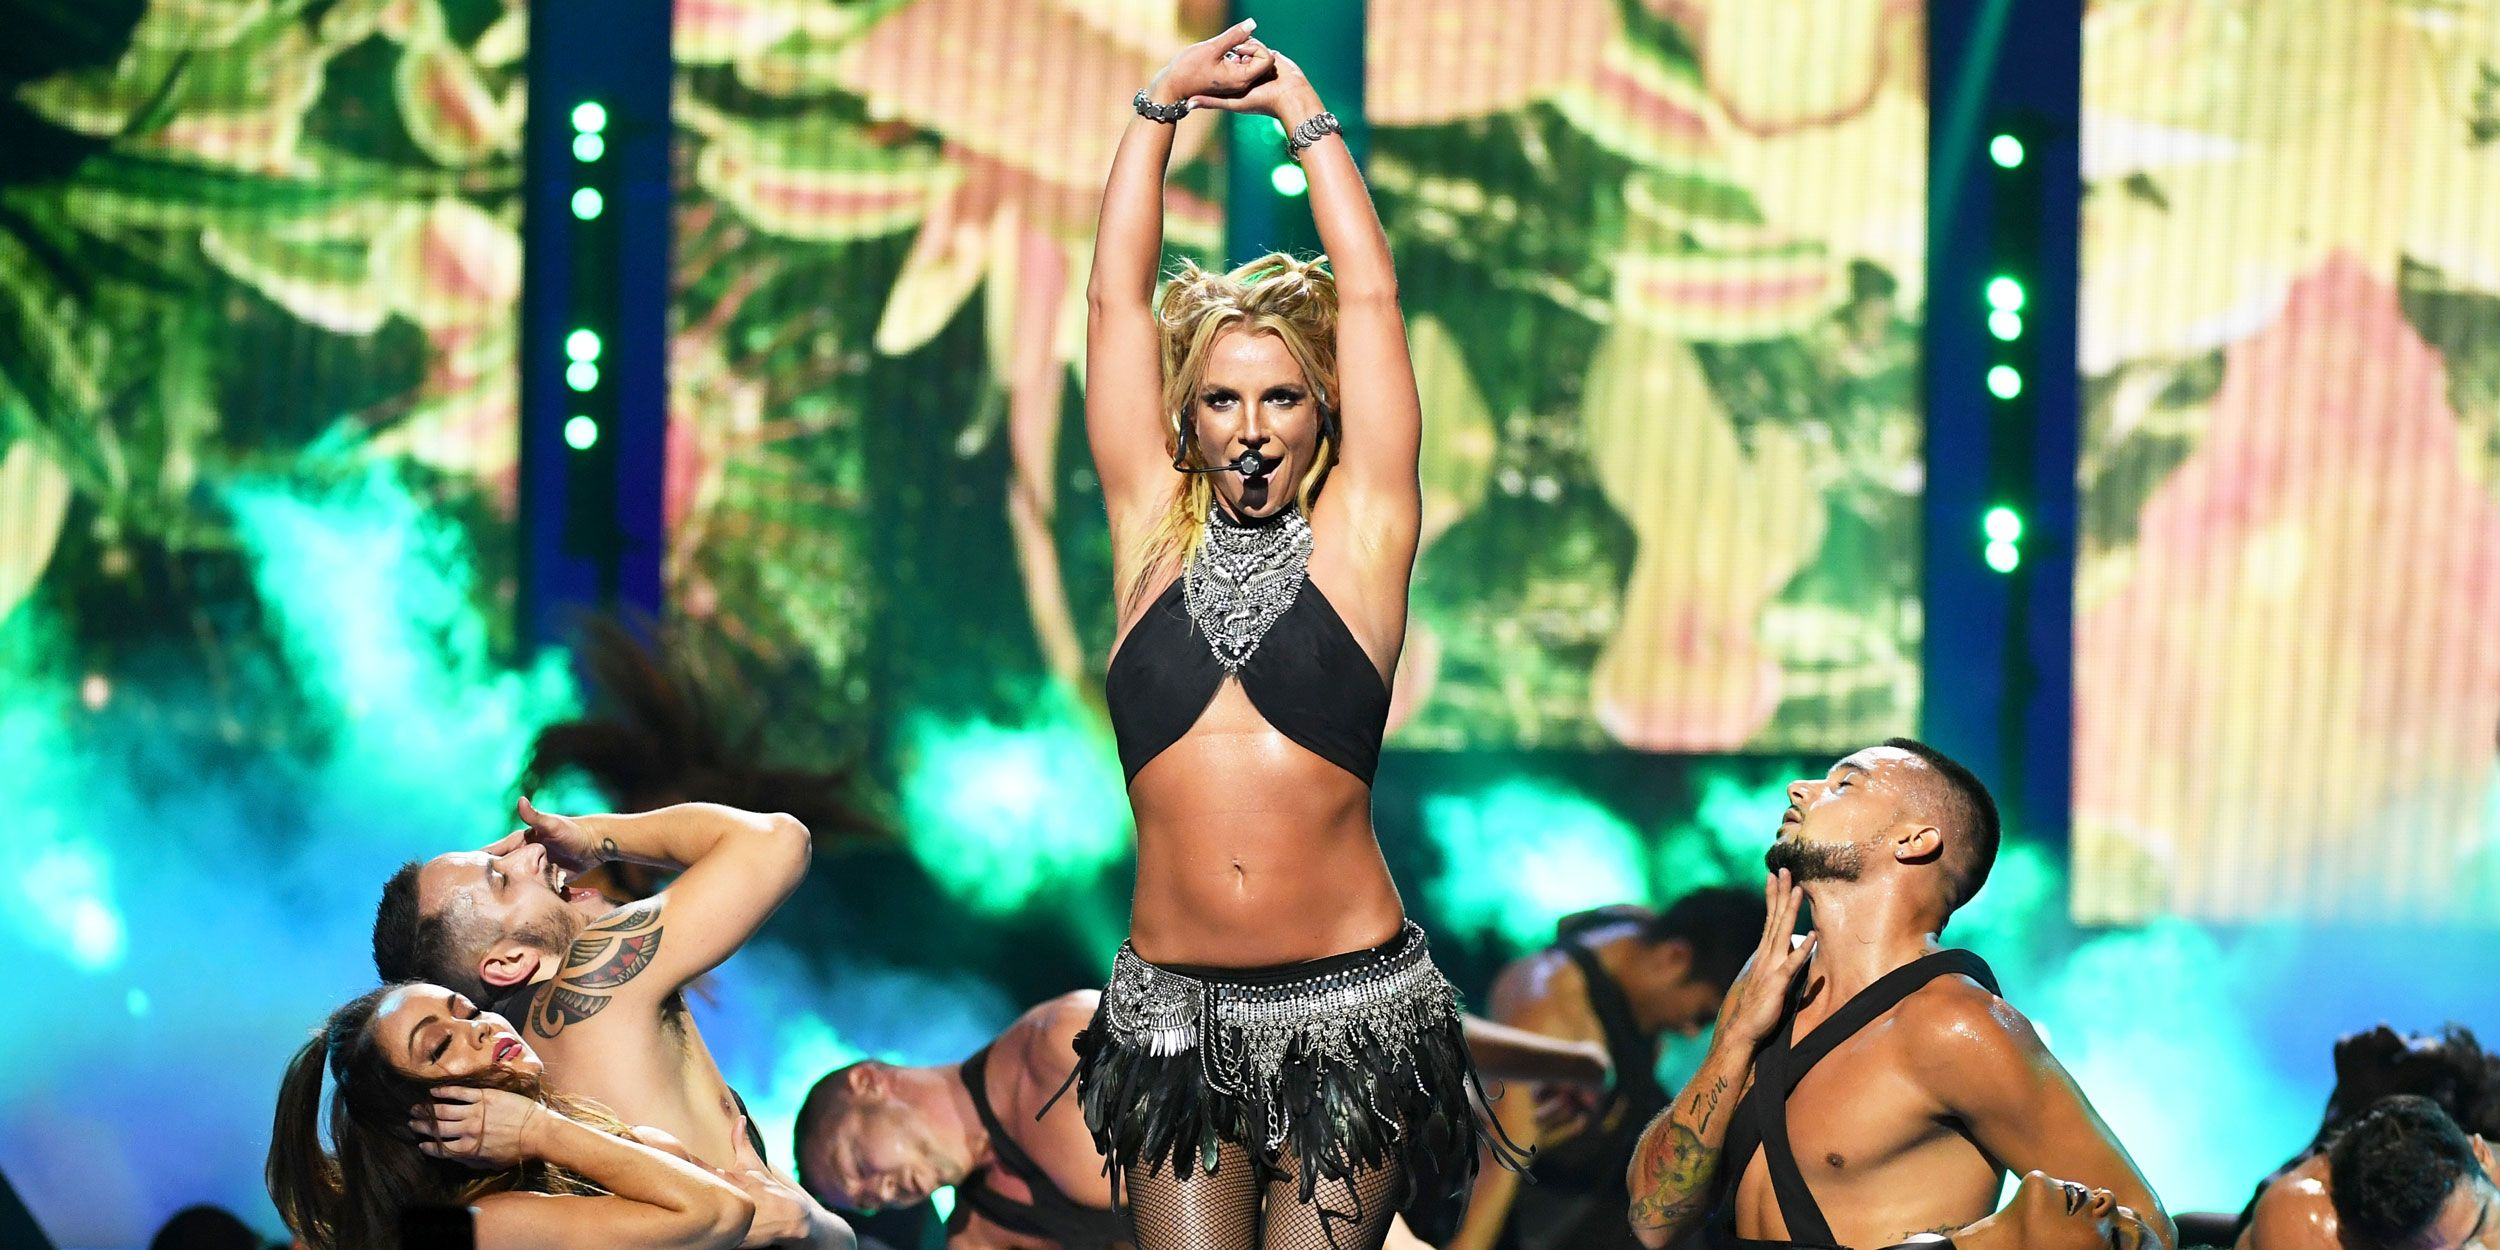 Britney Spears Just Gave Away Her Flat Belly Workout